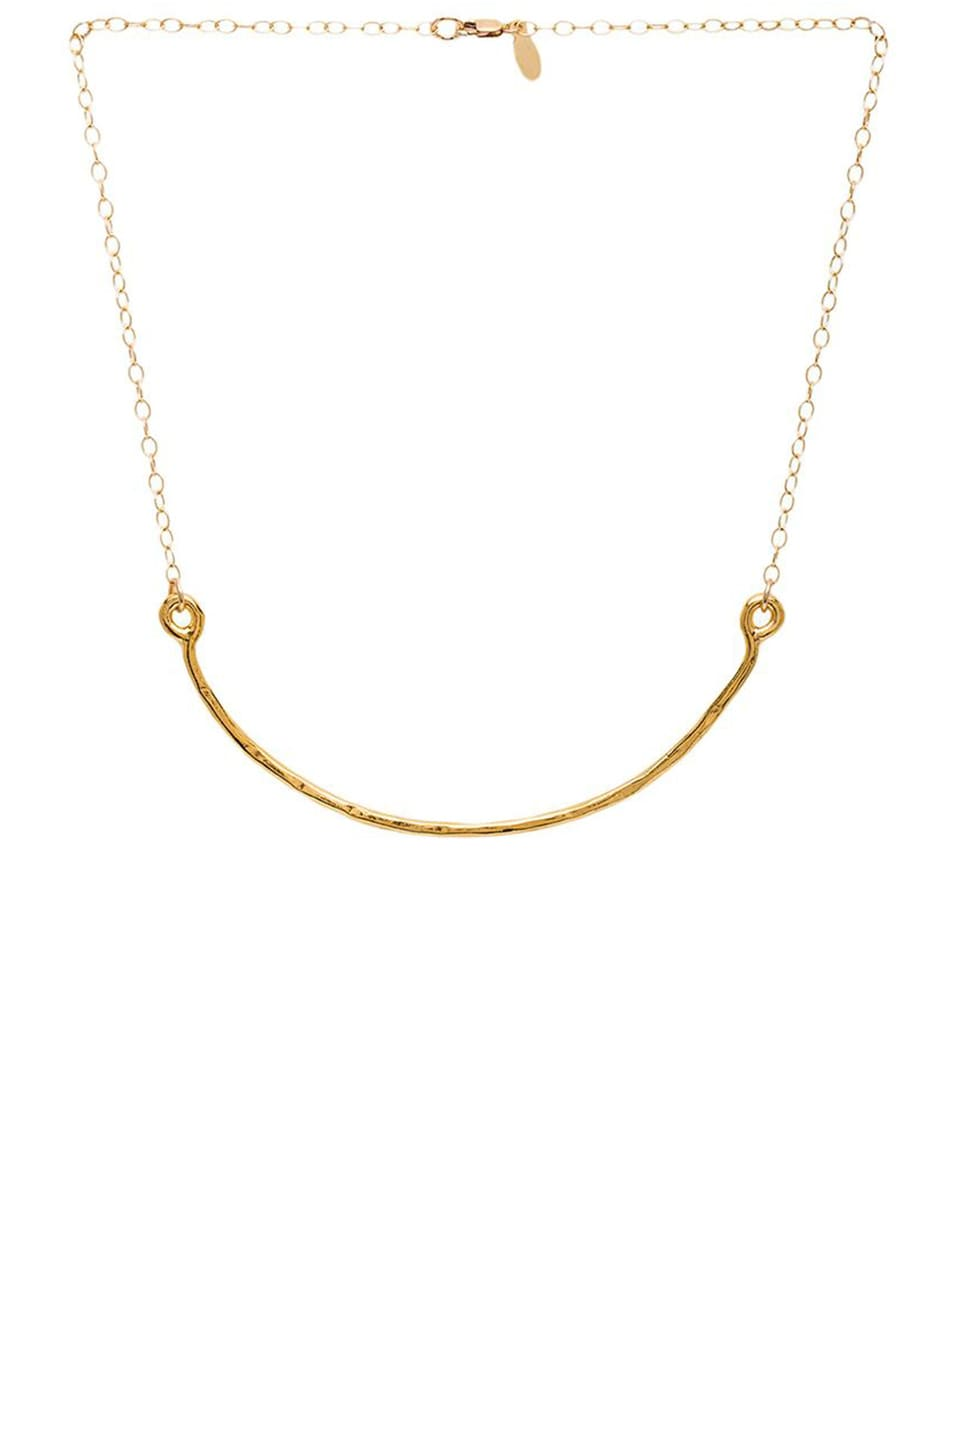 Stella and Bow Queen Maria Theresa of Spain Necklace in Gold